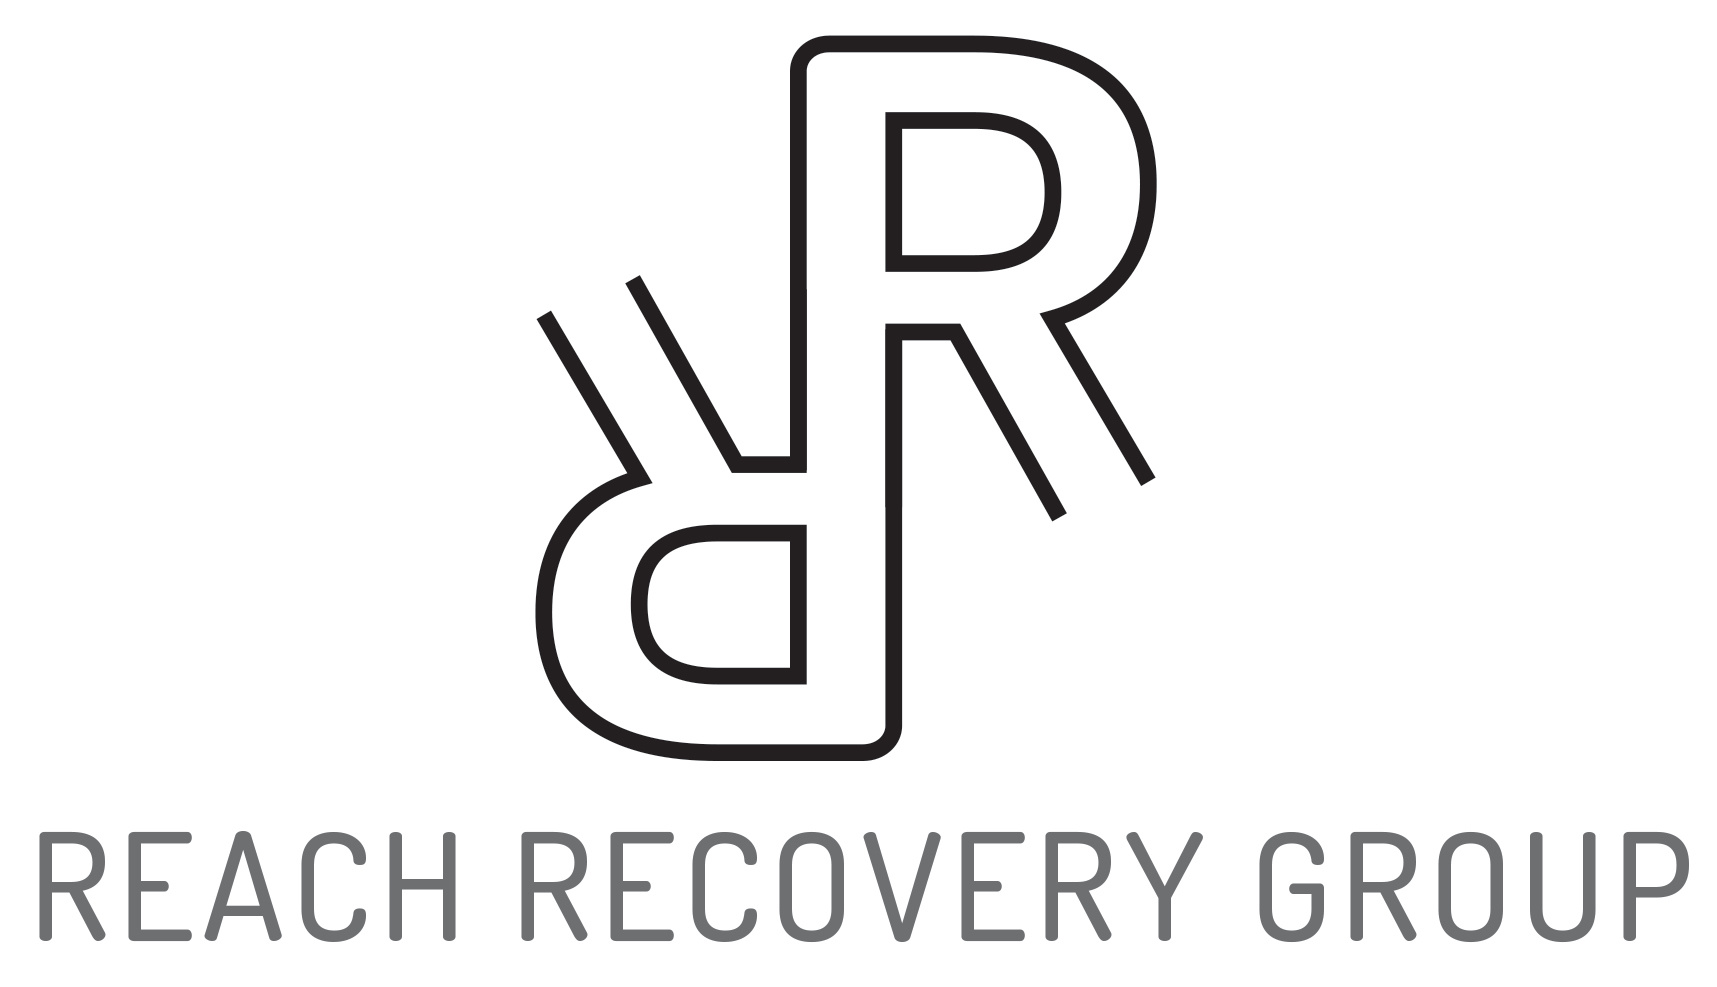 ReachRecoveryGroup Logo design